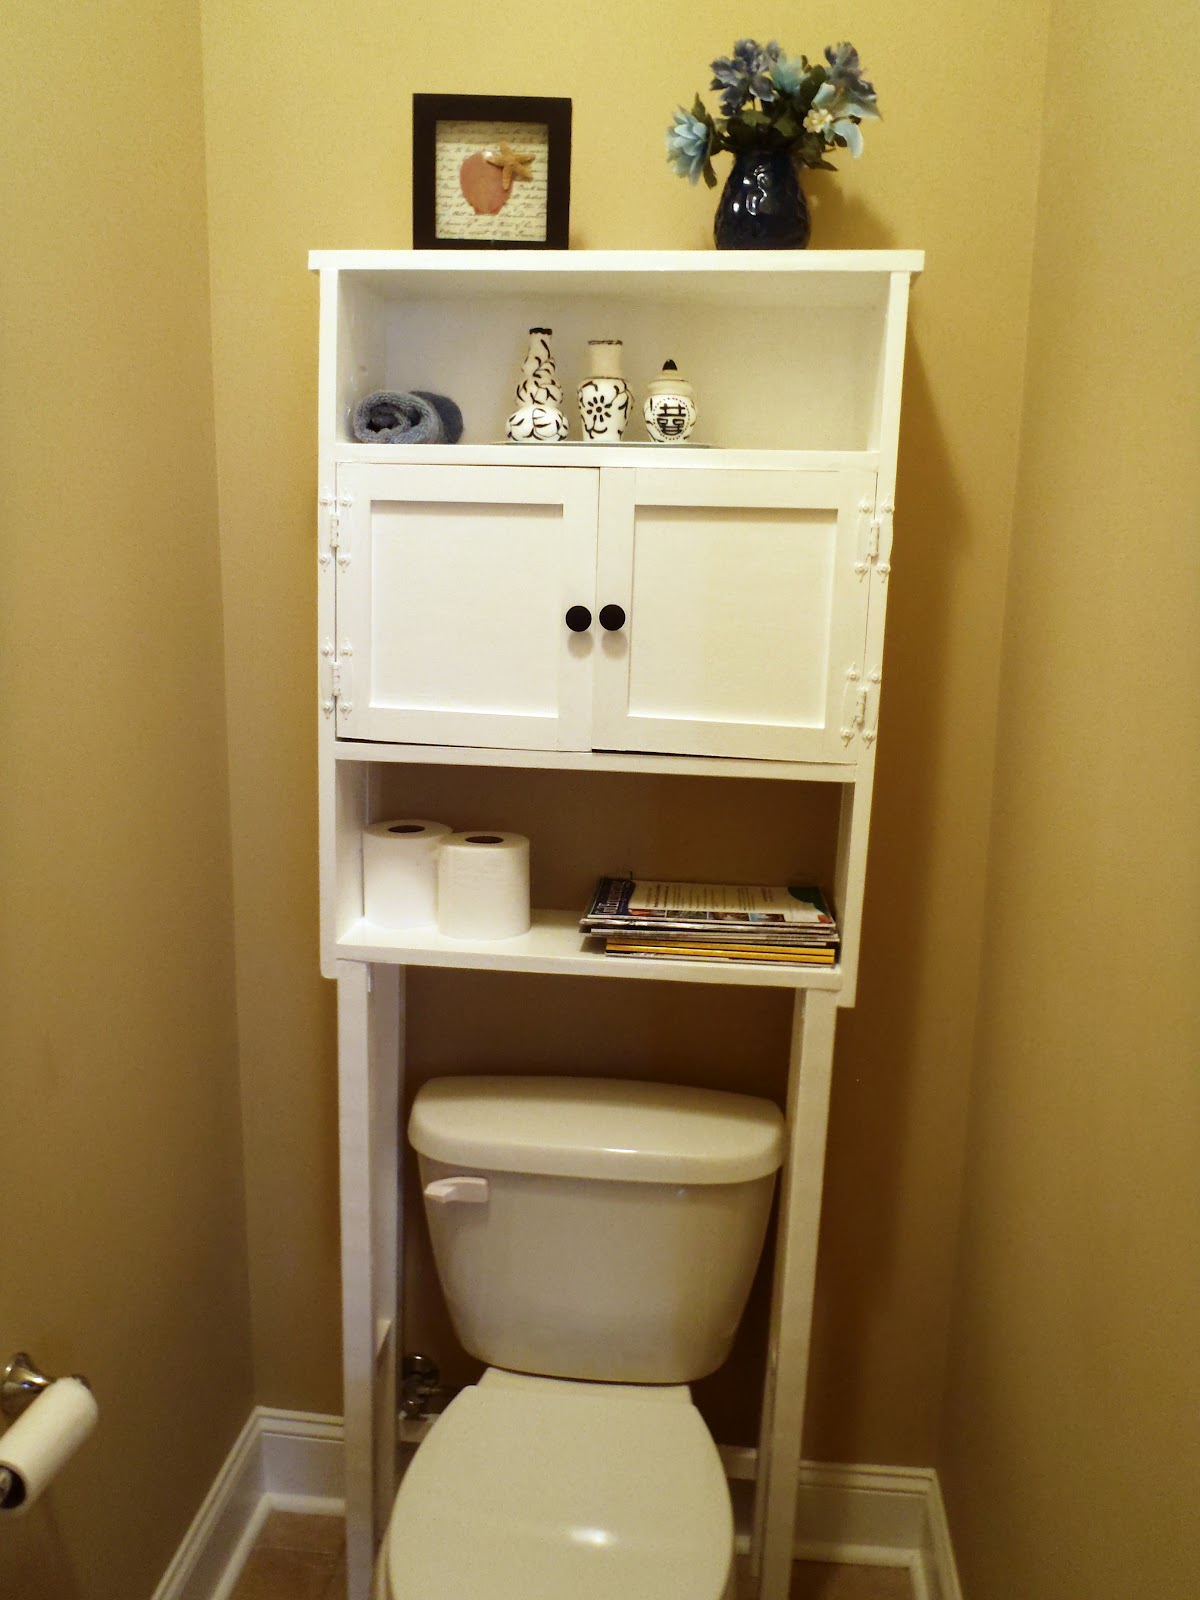 Bathroom Small Space Remodeling Bathroom Ideas Small: Lazy Liz On Less: Space Saver For Bathroom